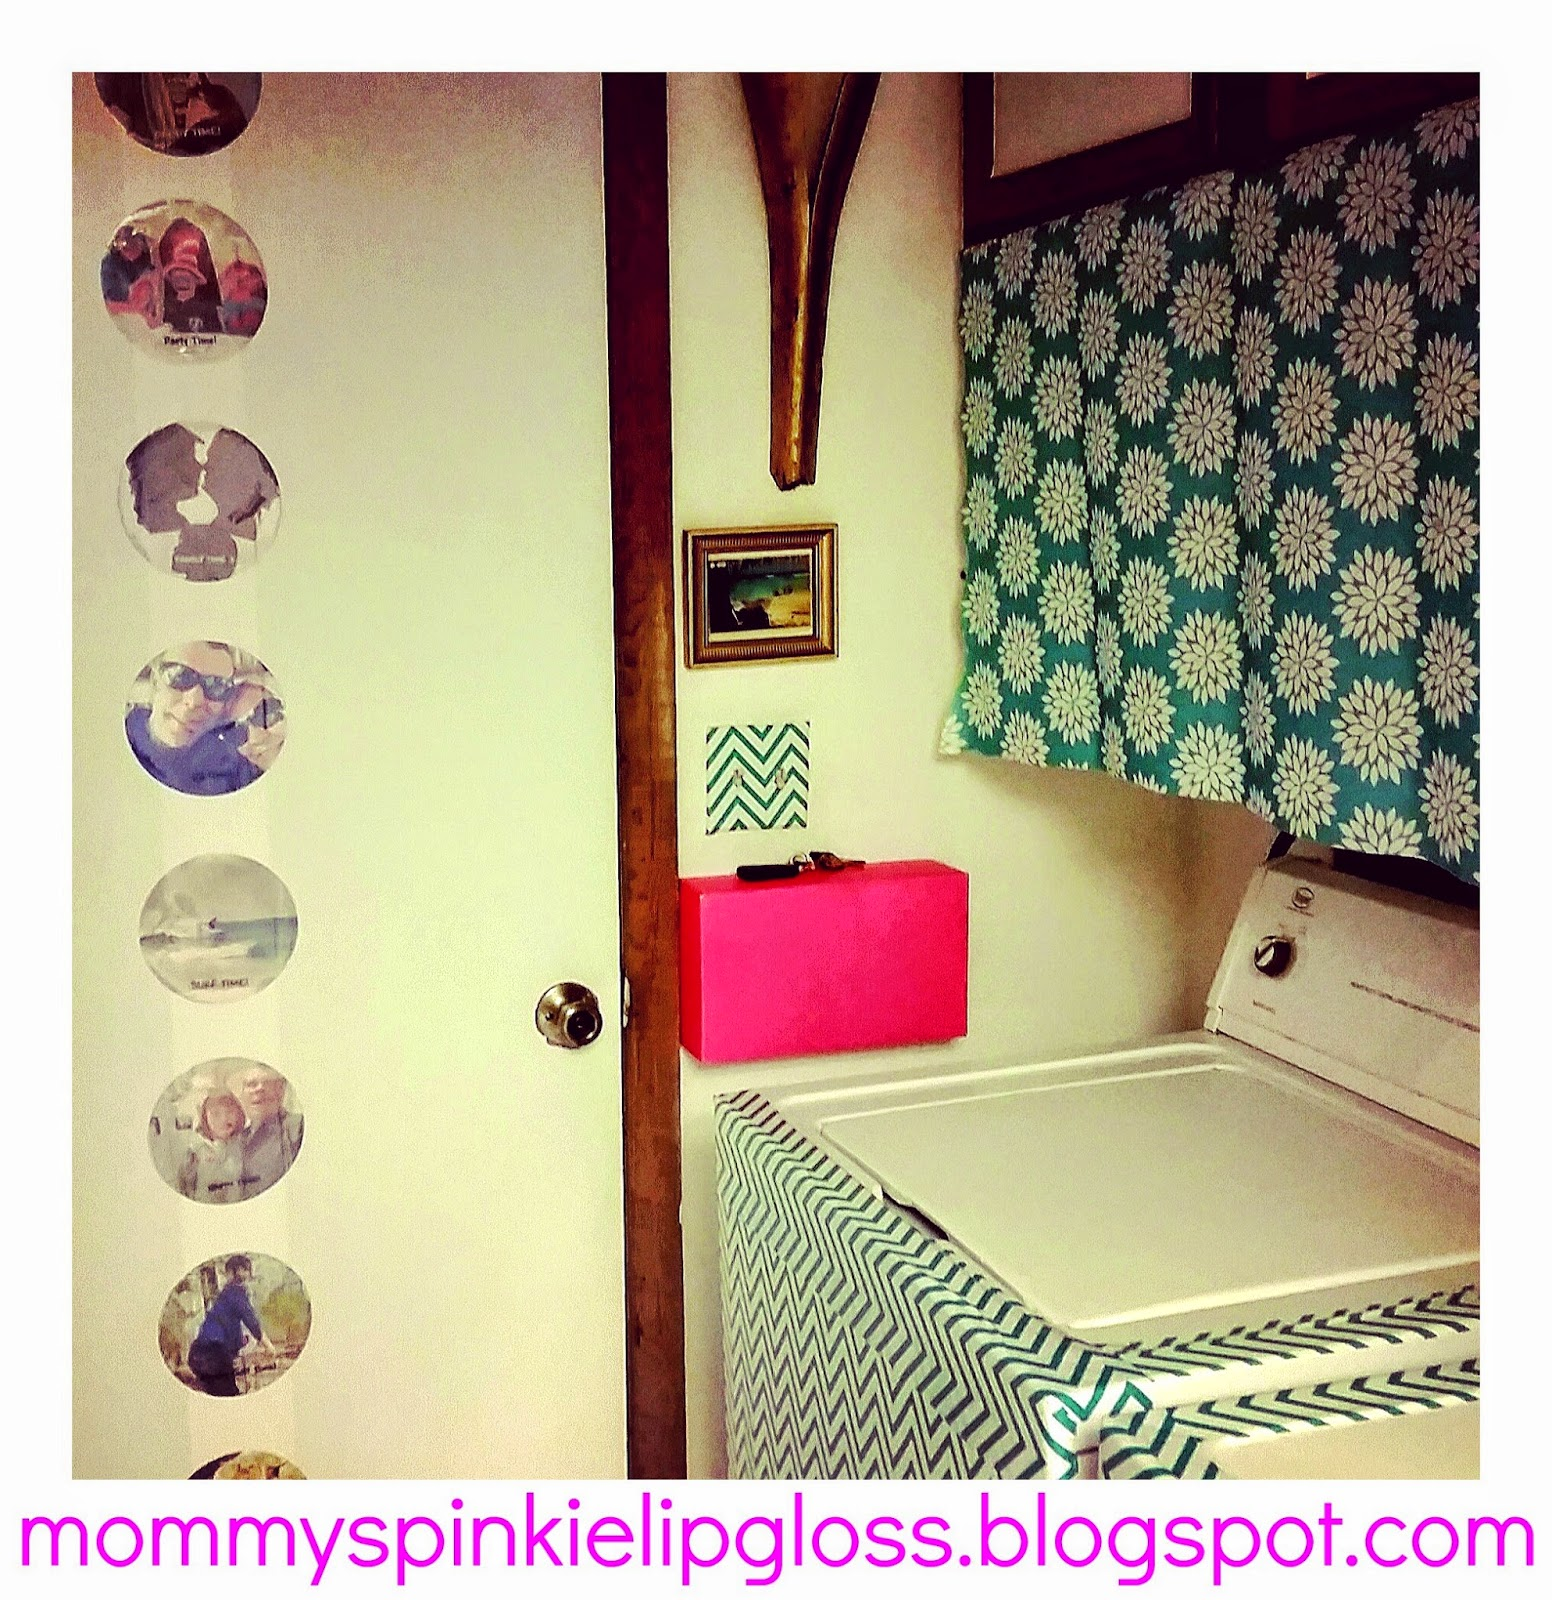 Contact paper makes my laundry room make over easy from MommysPinkieLipgloss.blogspot.com